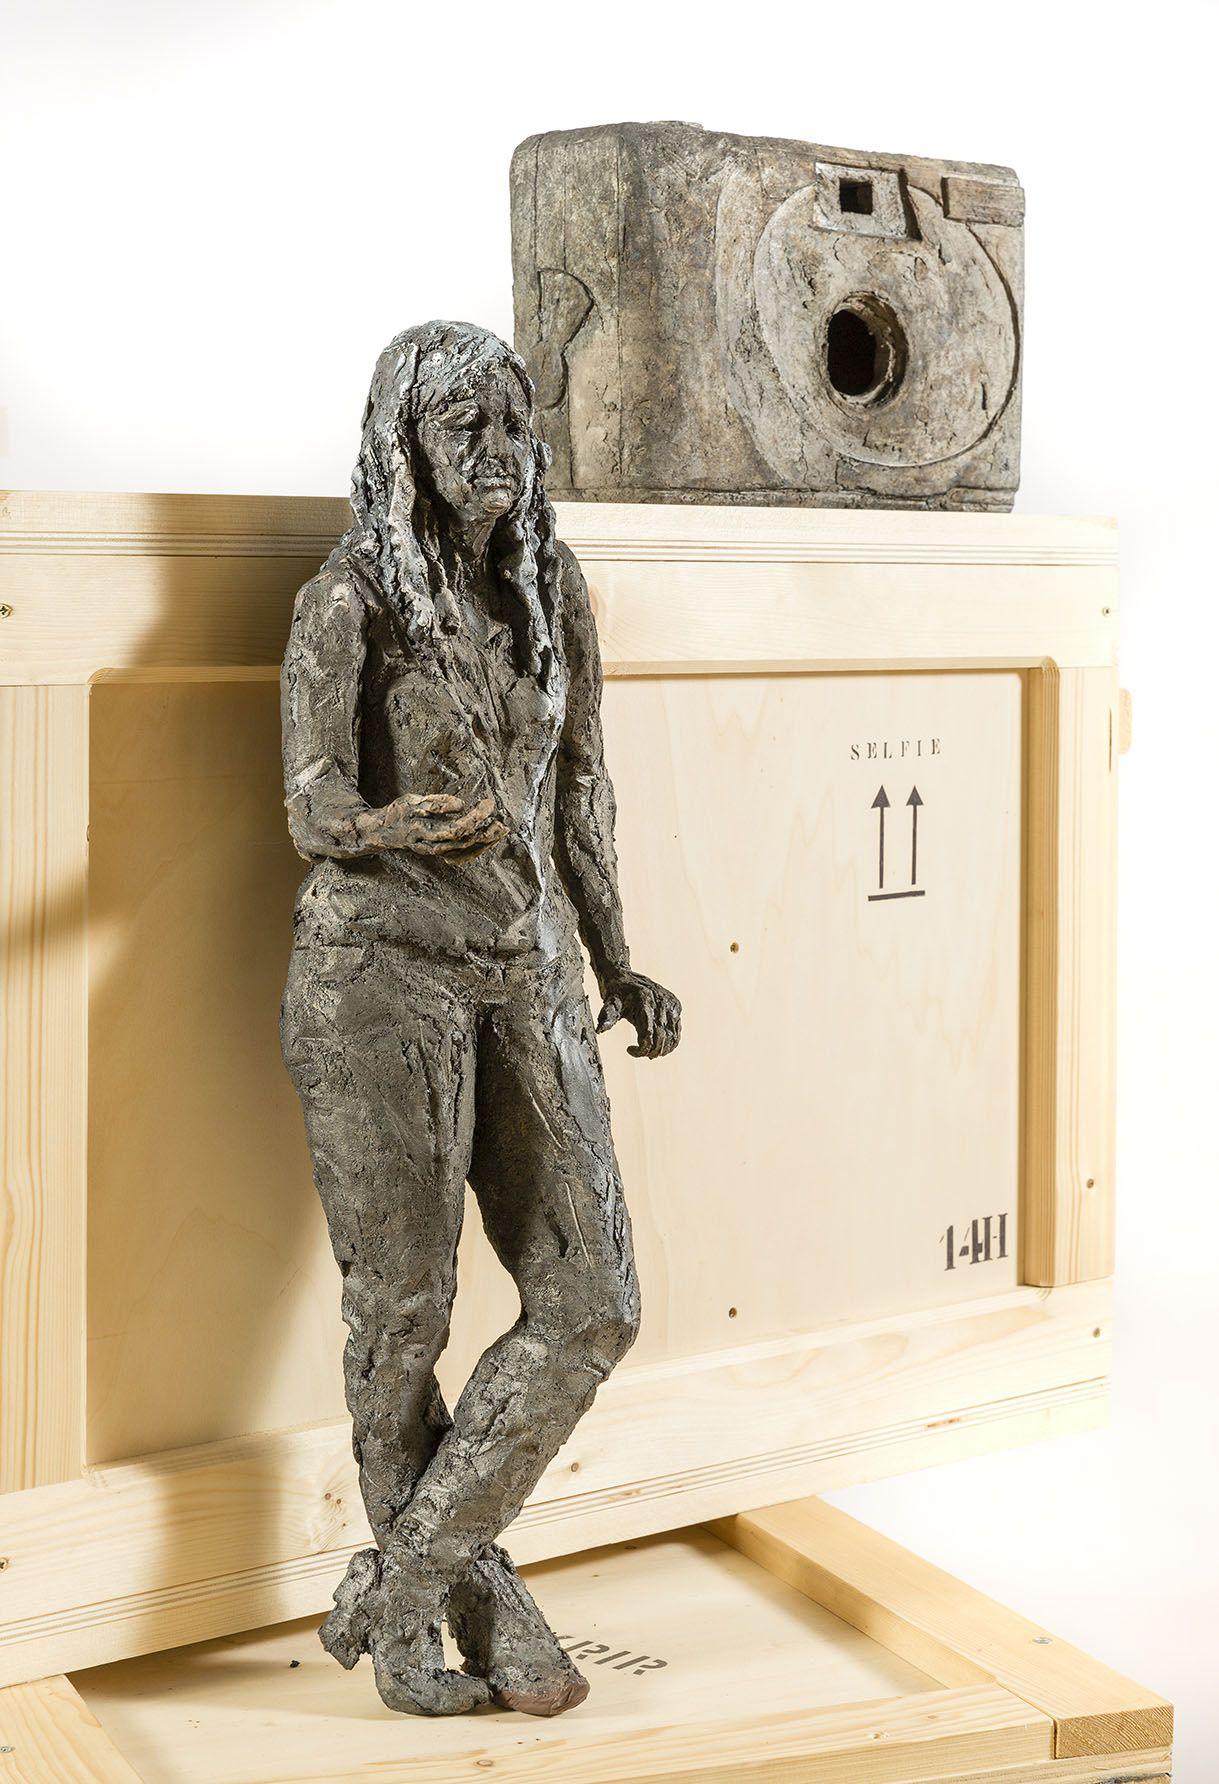 Selfie,Cécile Raynal,Sculpture contemporaine